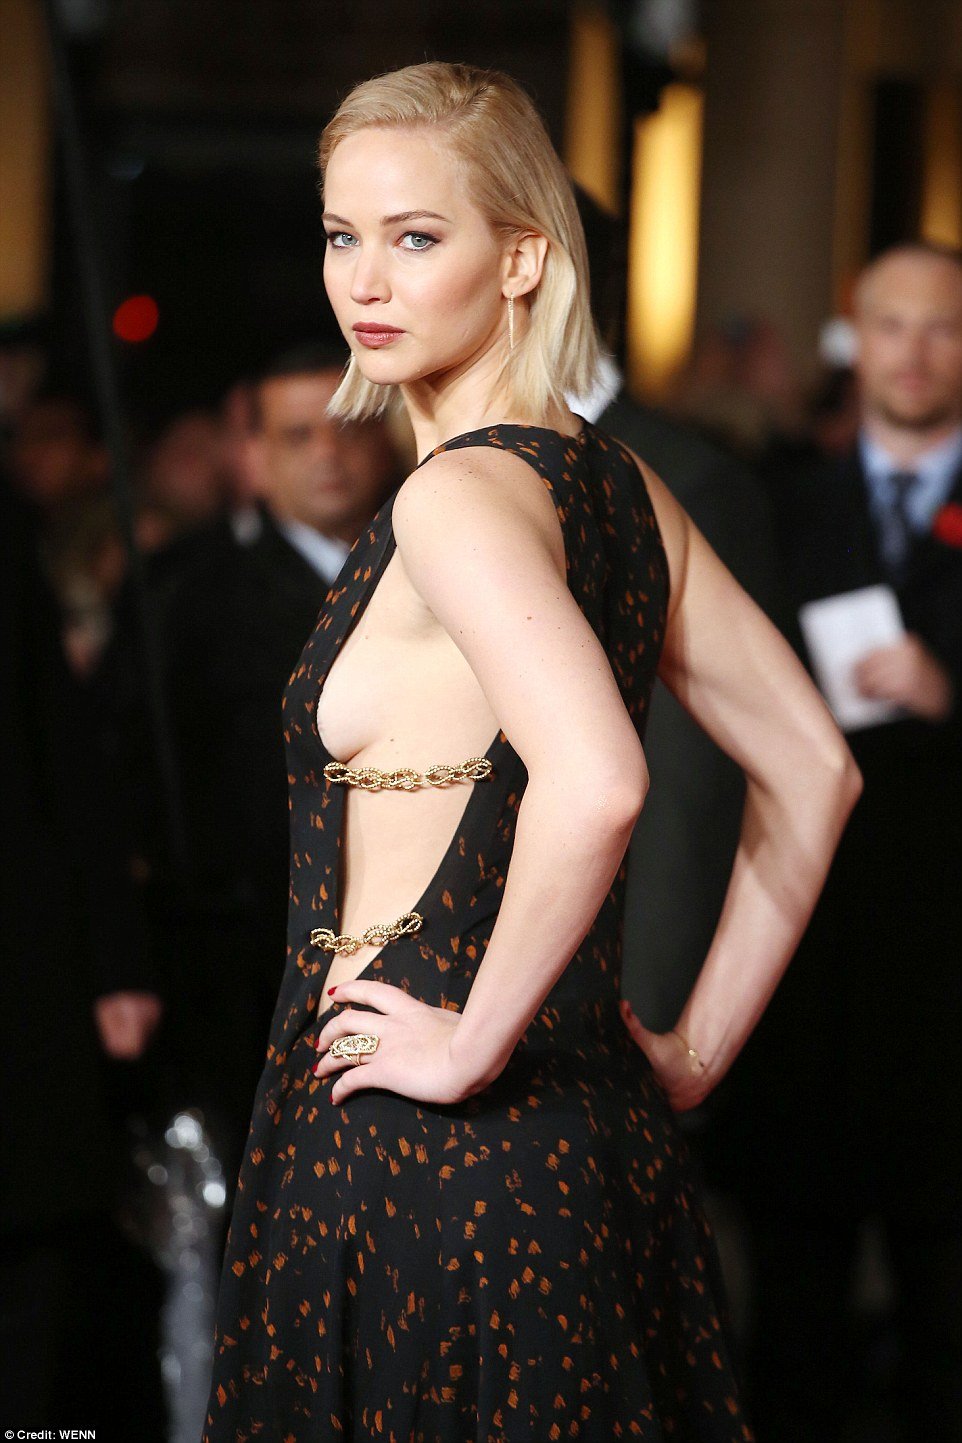 Jennifer Lawrence in Dior at London Premiere of Hunger Games Mockingjay Part 2